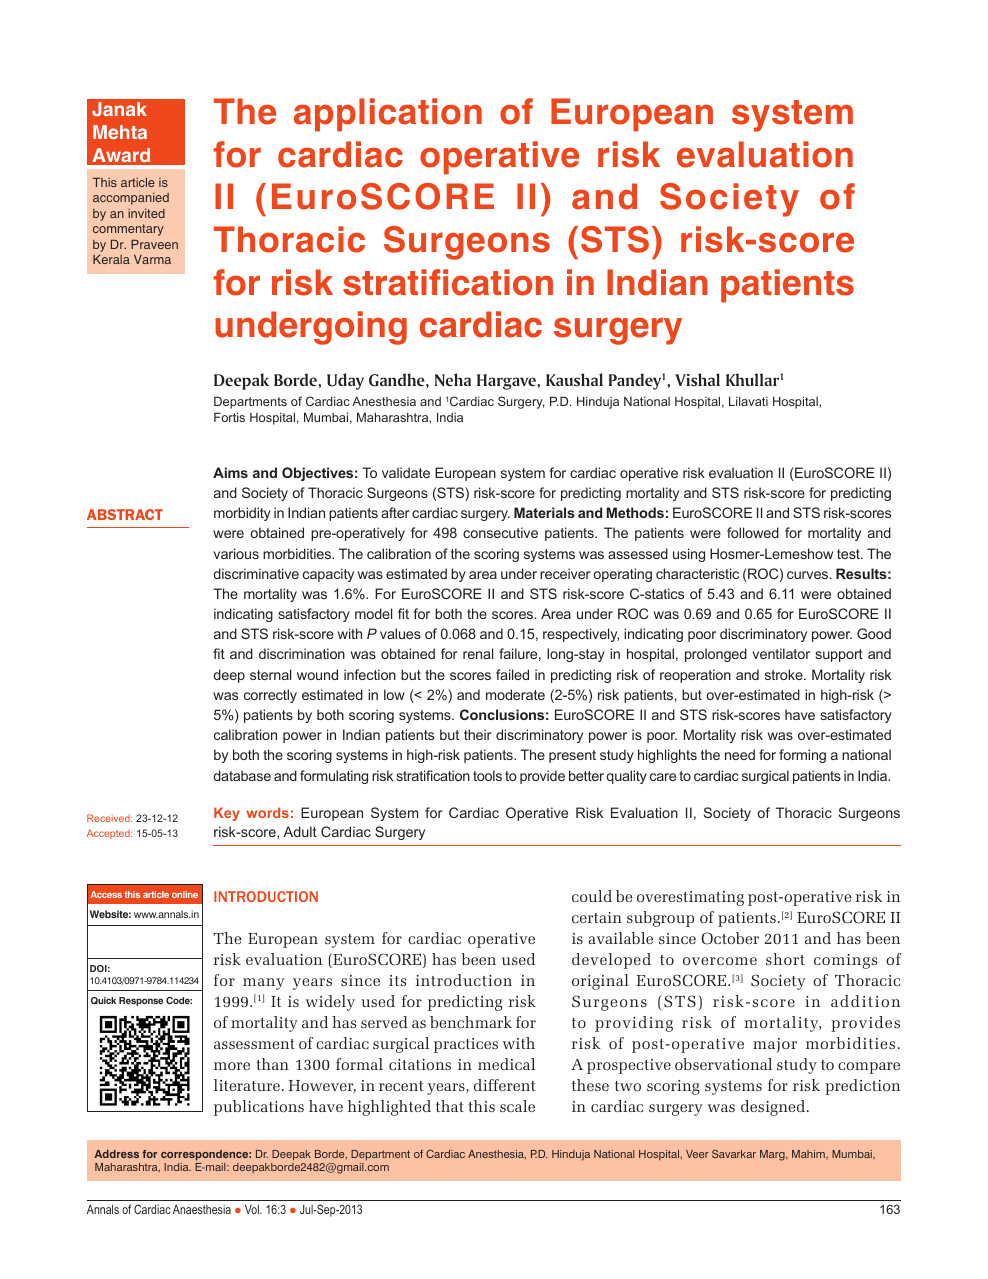 The Application Of European System For Cardiac Operative Risk Evaluation Ii Euroscore Ii And Society Of Thoracic Surgeons Sts Risk Score For Risk Stratification In Indian Patients Undergoing Cardiac Surgery Topic Of